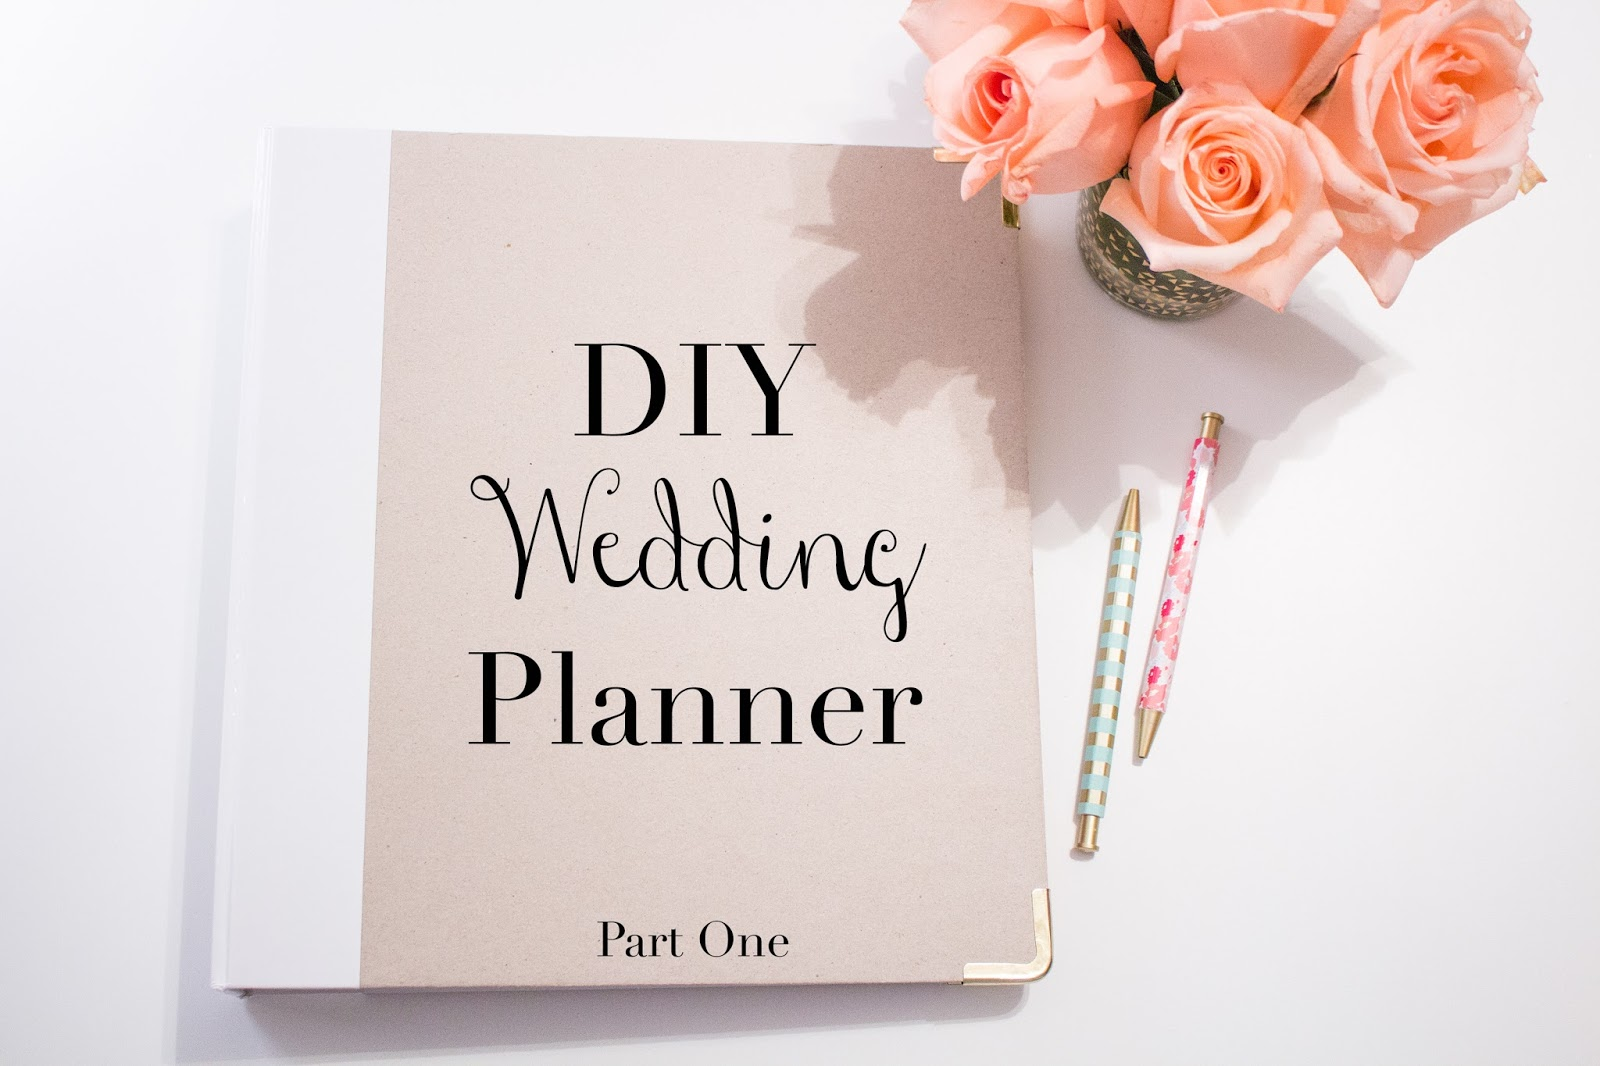 I Got To Thinking Of What Every Good Planner Has And Knew Needed Be In My Wedding 1 Hardcover